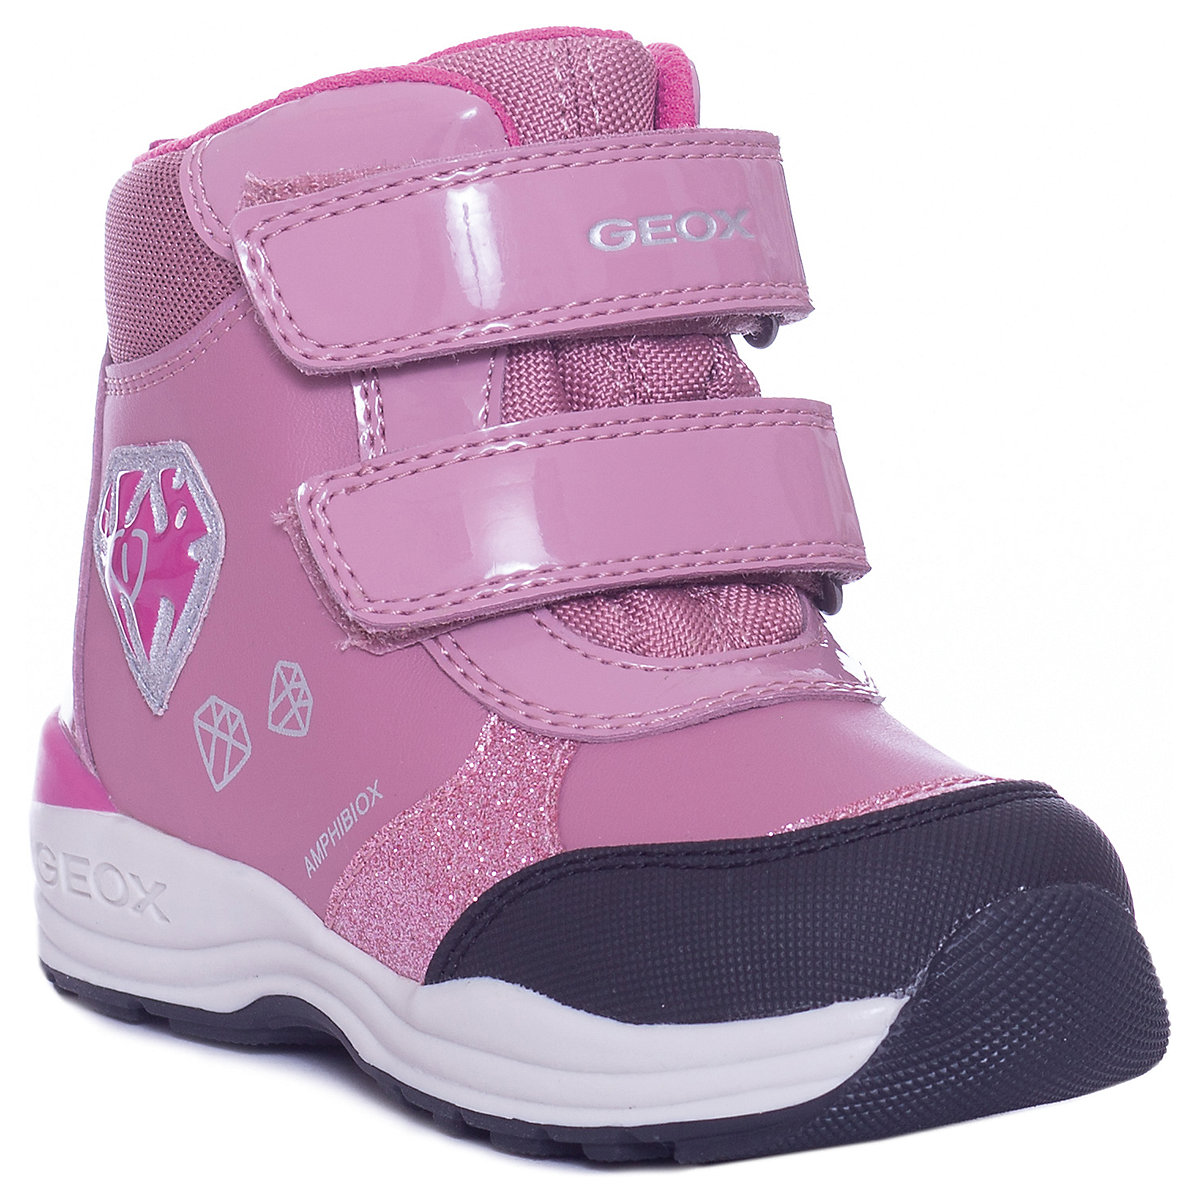 GEOX Boots 8786600 baby shoes For girl textile Winter led телевизор lg 43 lk 5400